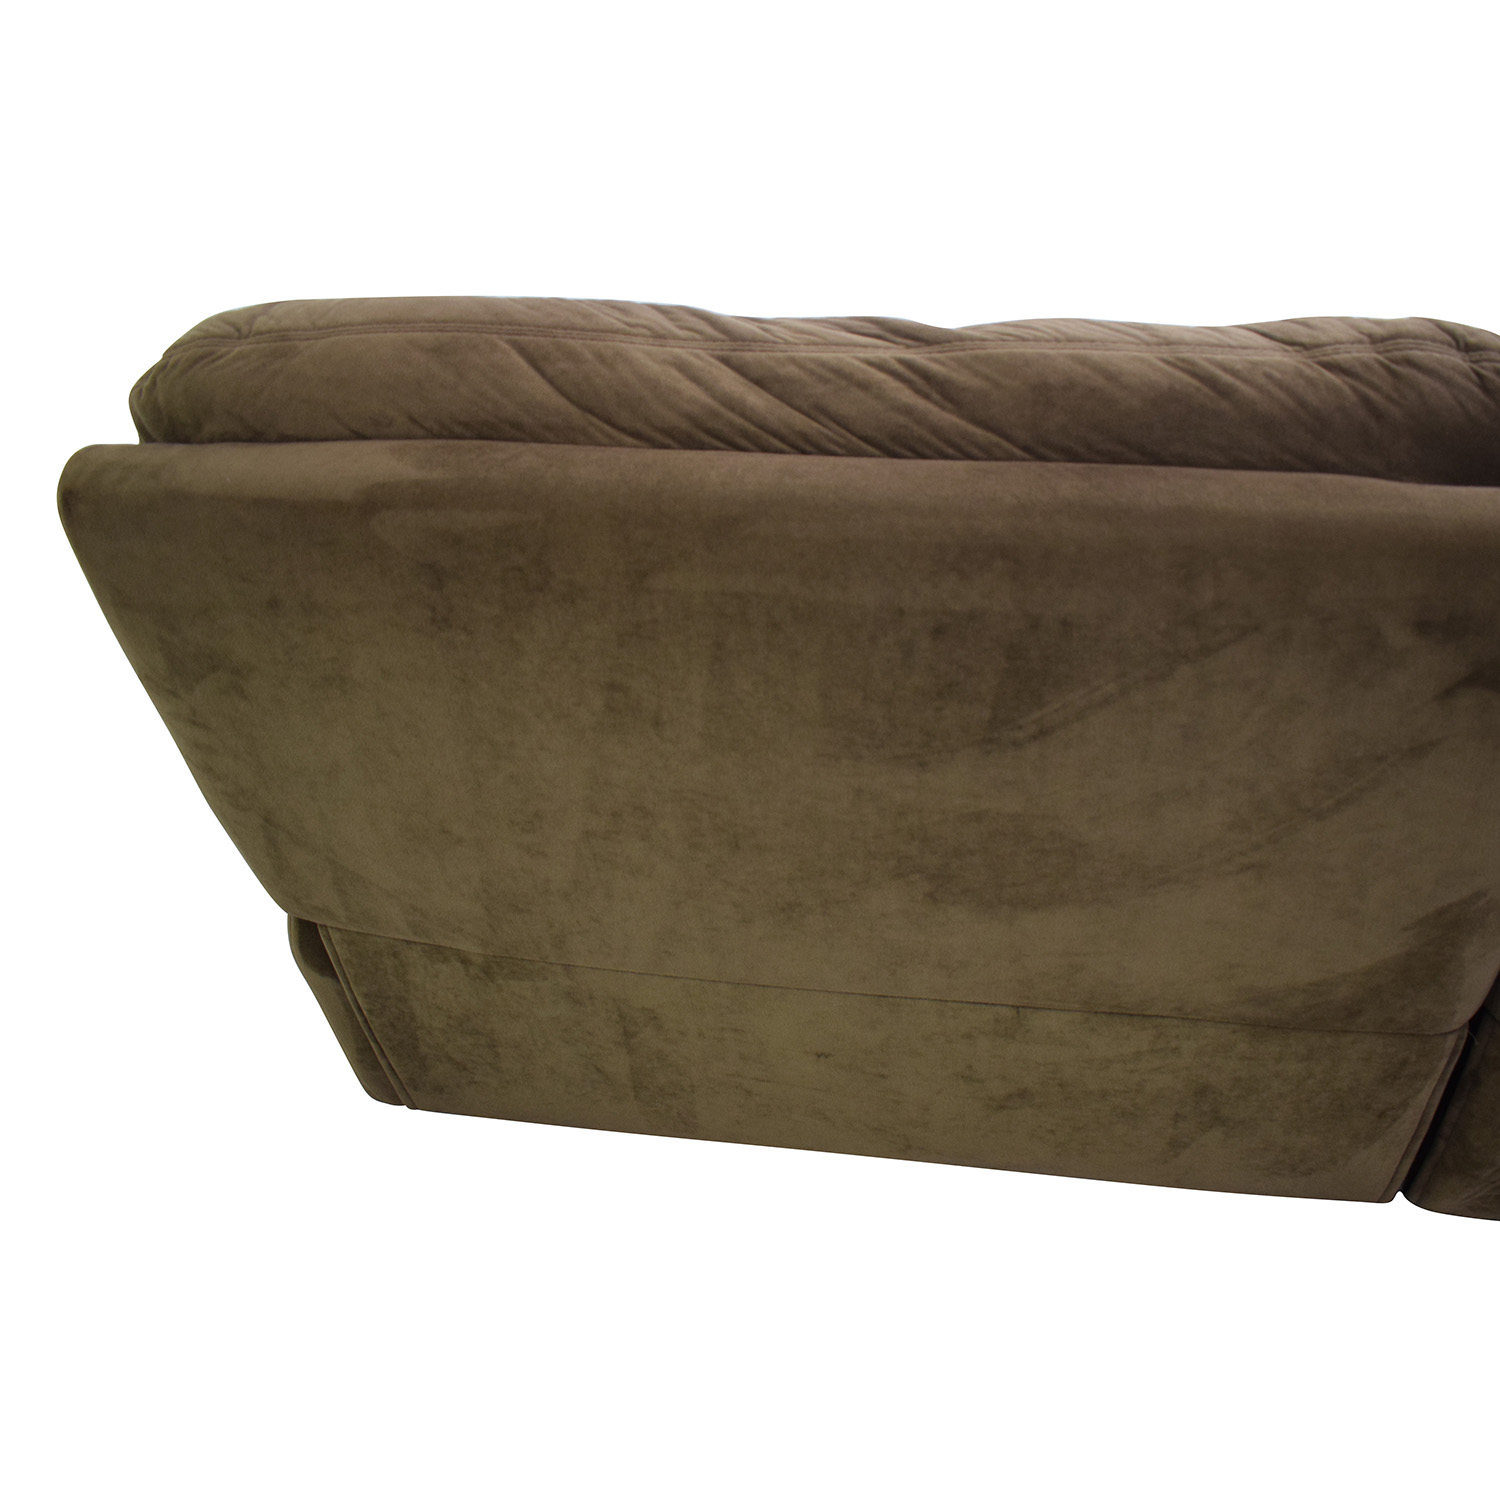 Macy's Macy's Brown Recliner Couch price